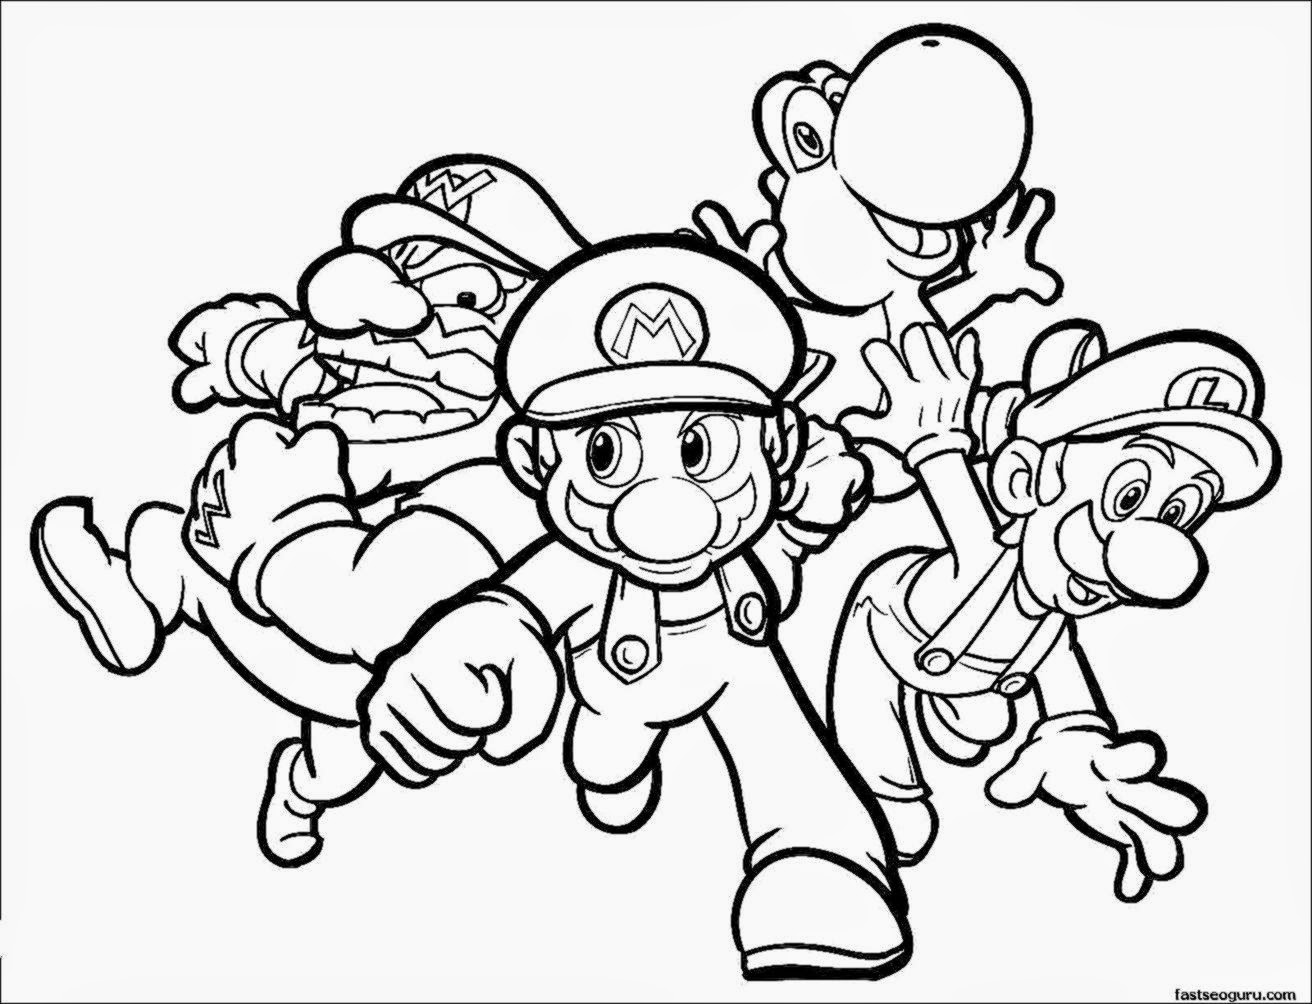 Jls colouring pages to print - Printable Coloring Pages Coloring Pages Printable